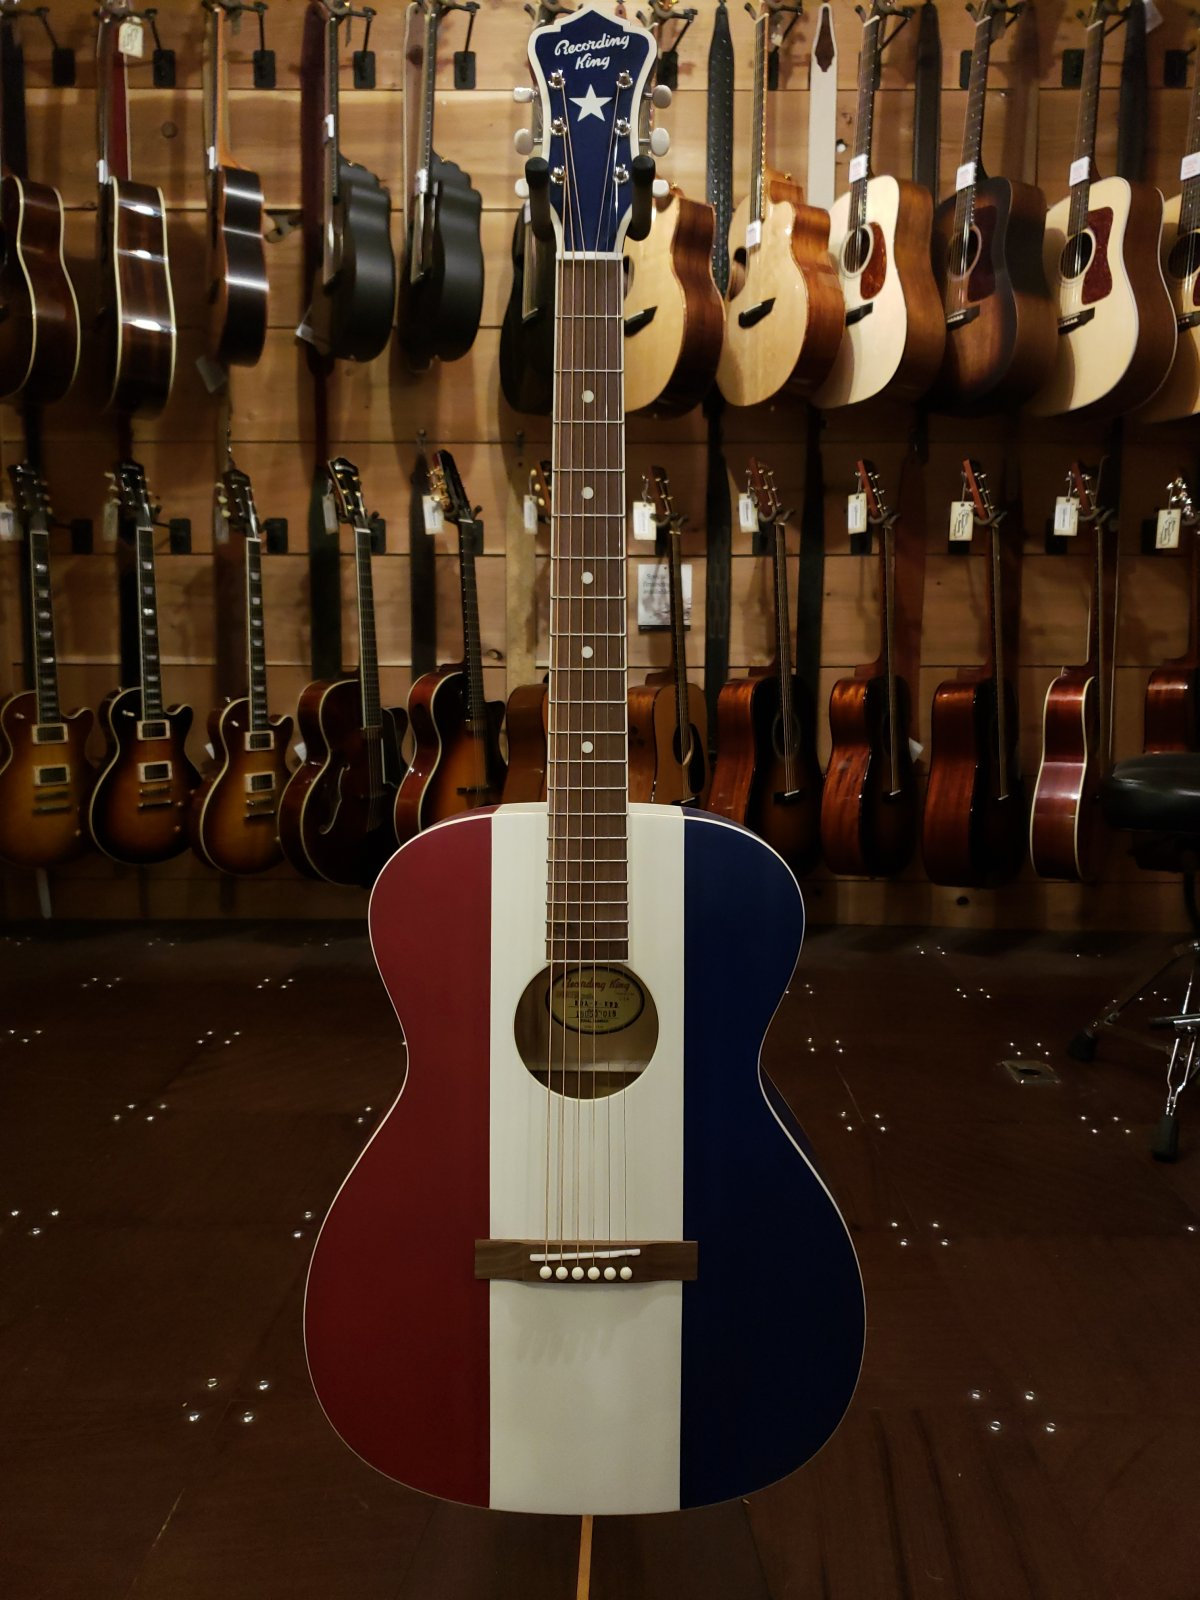 (Floor Model) Recording King Bakersfield Ltd Edition Red/White/Blue Acoustic Guitar